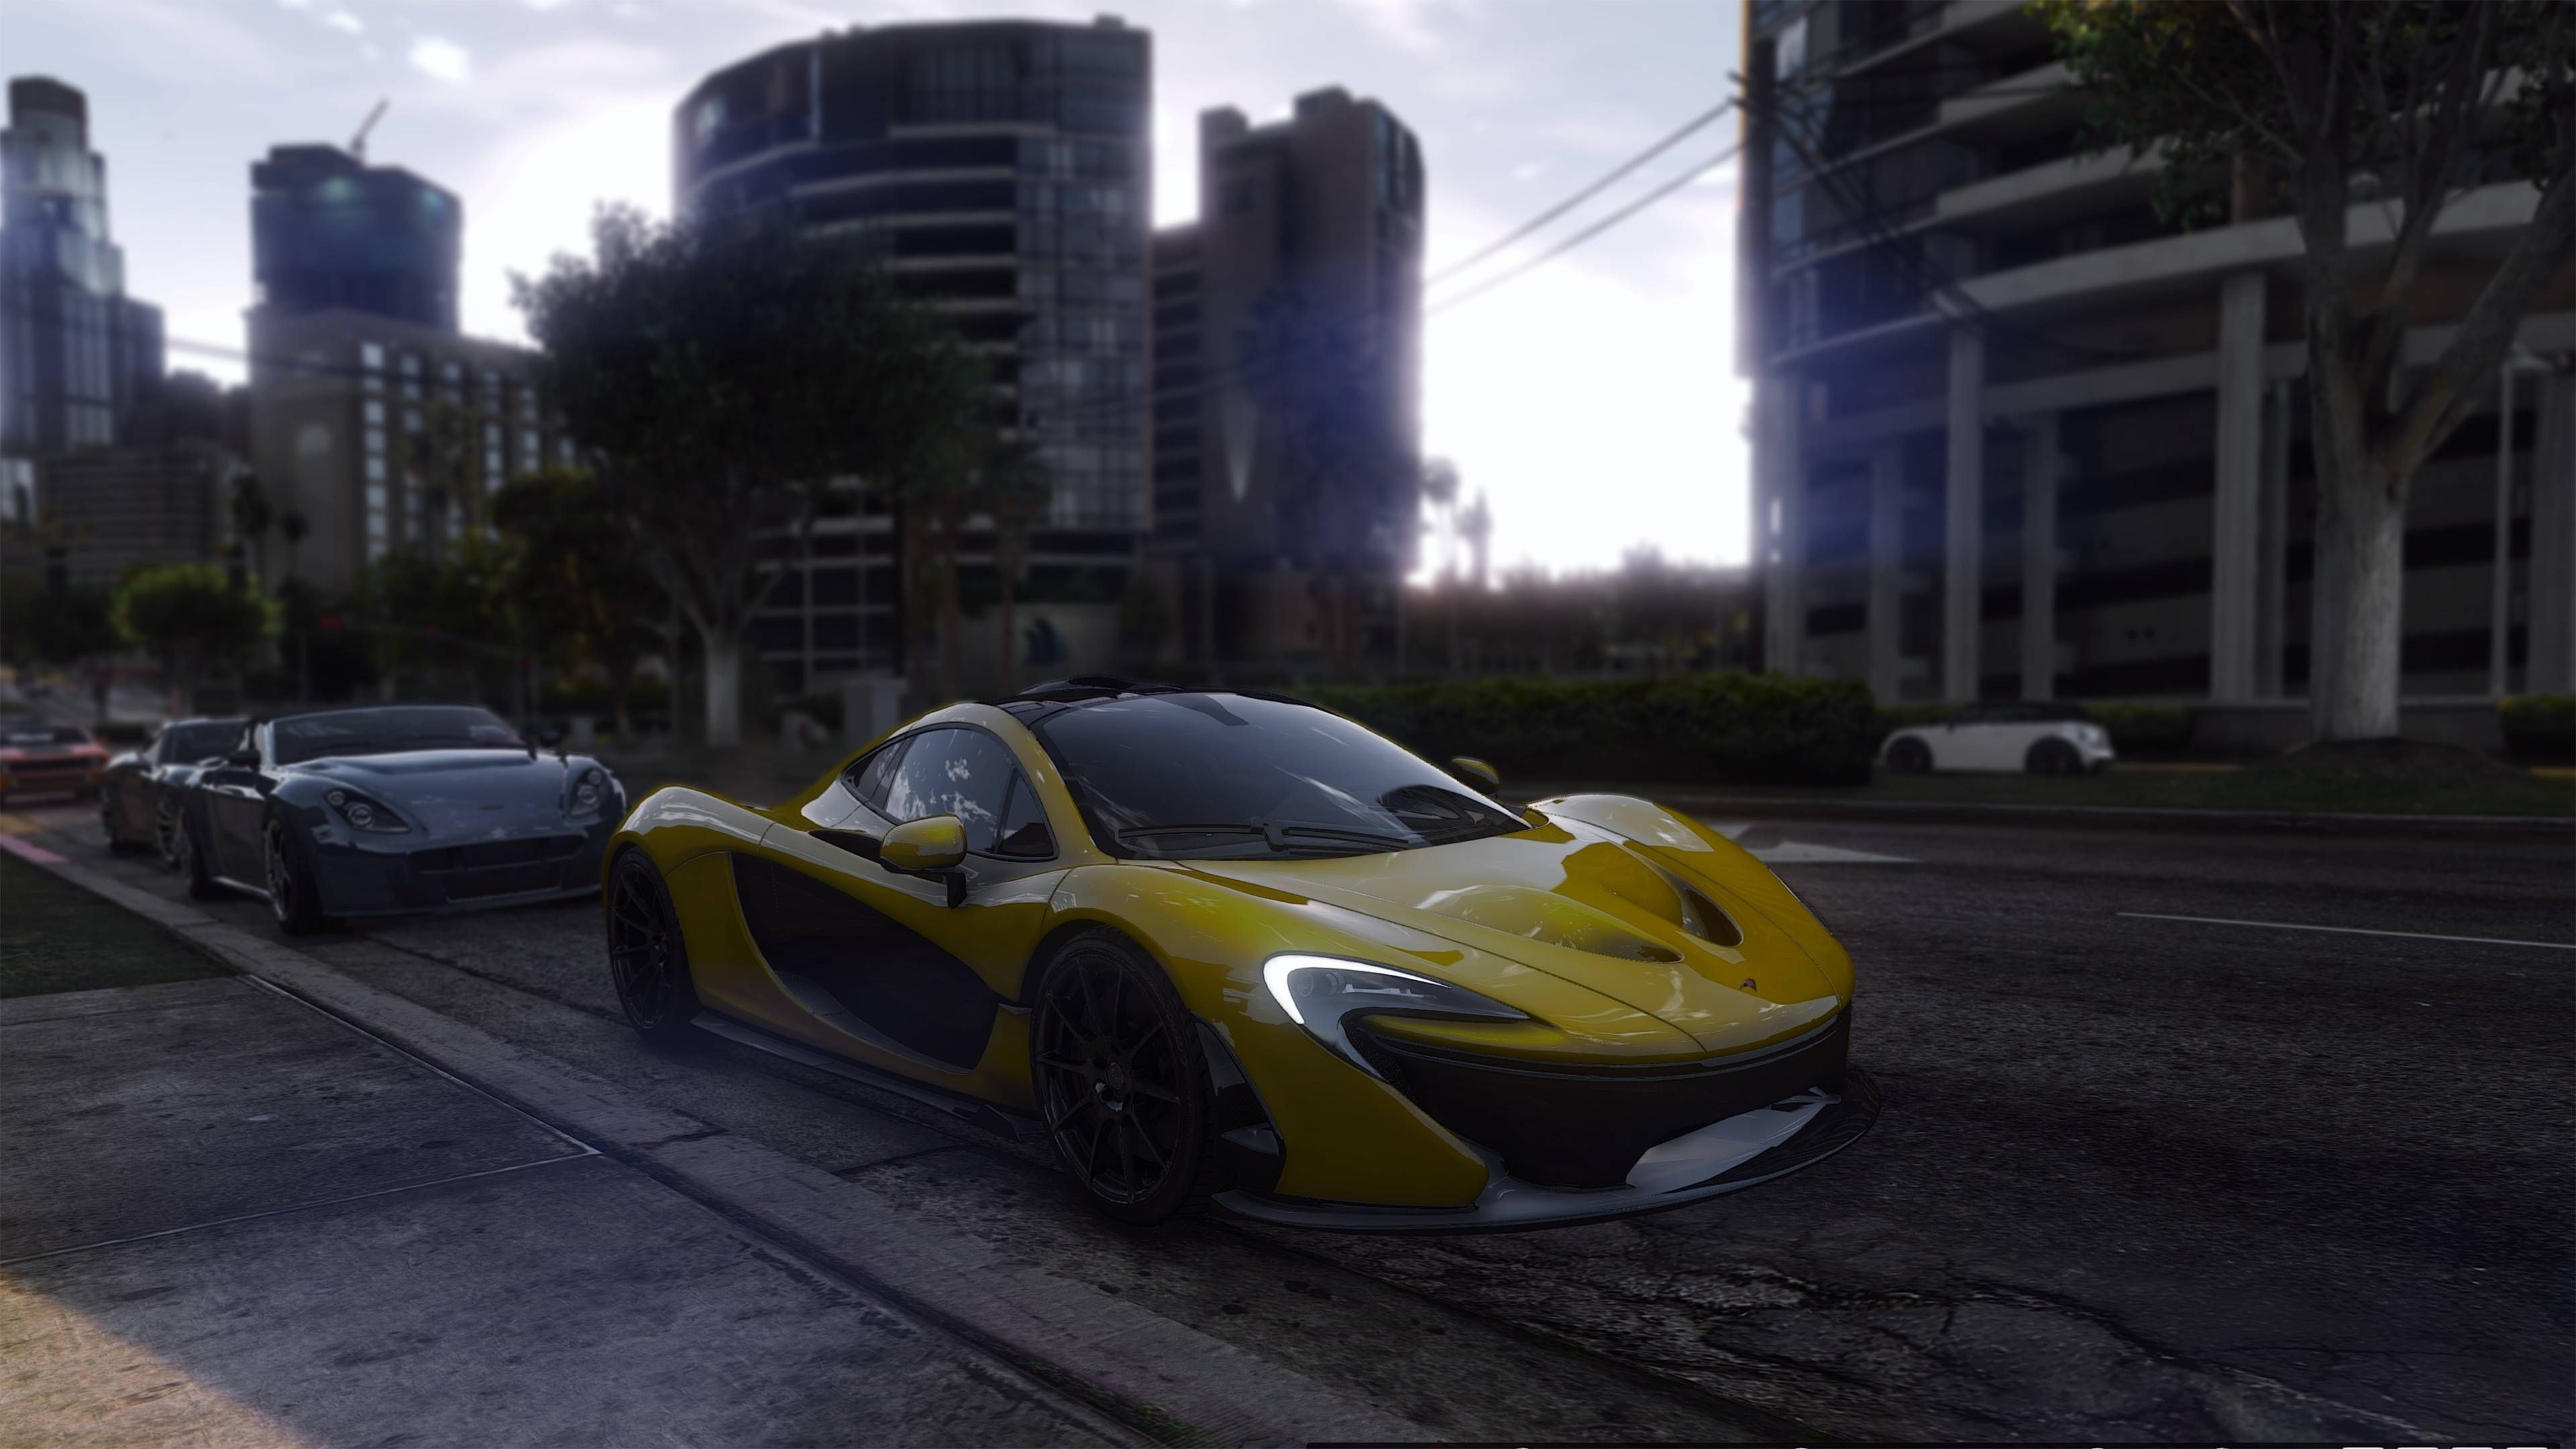 Graphical Mods In GTA Online Will Get You Banned   GTA V